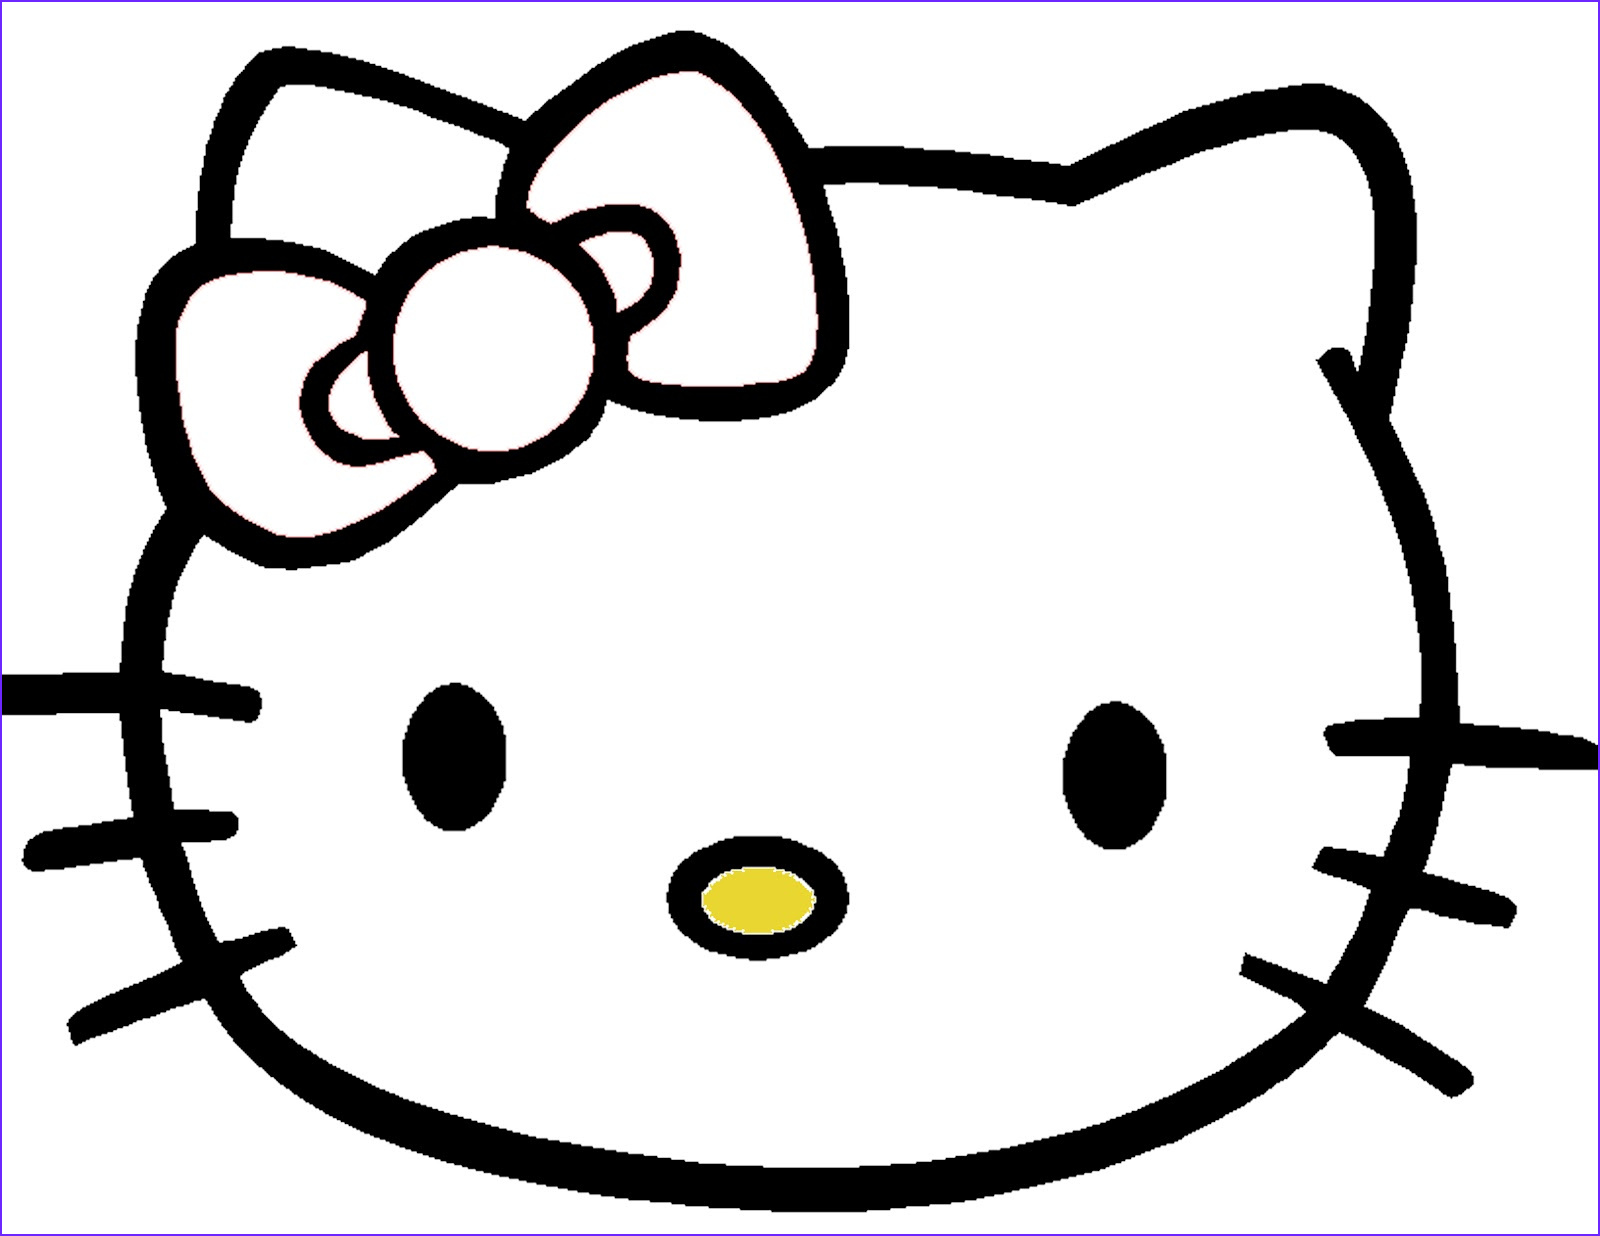 Coloring Stuff Awesome Collection Cinsarah Free Pin the Bow the Hello Kitty Game